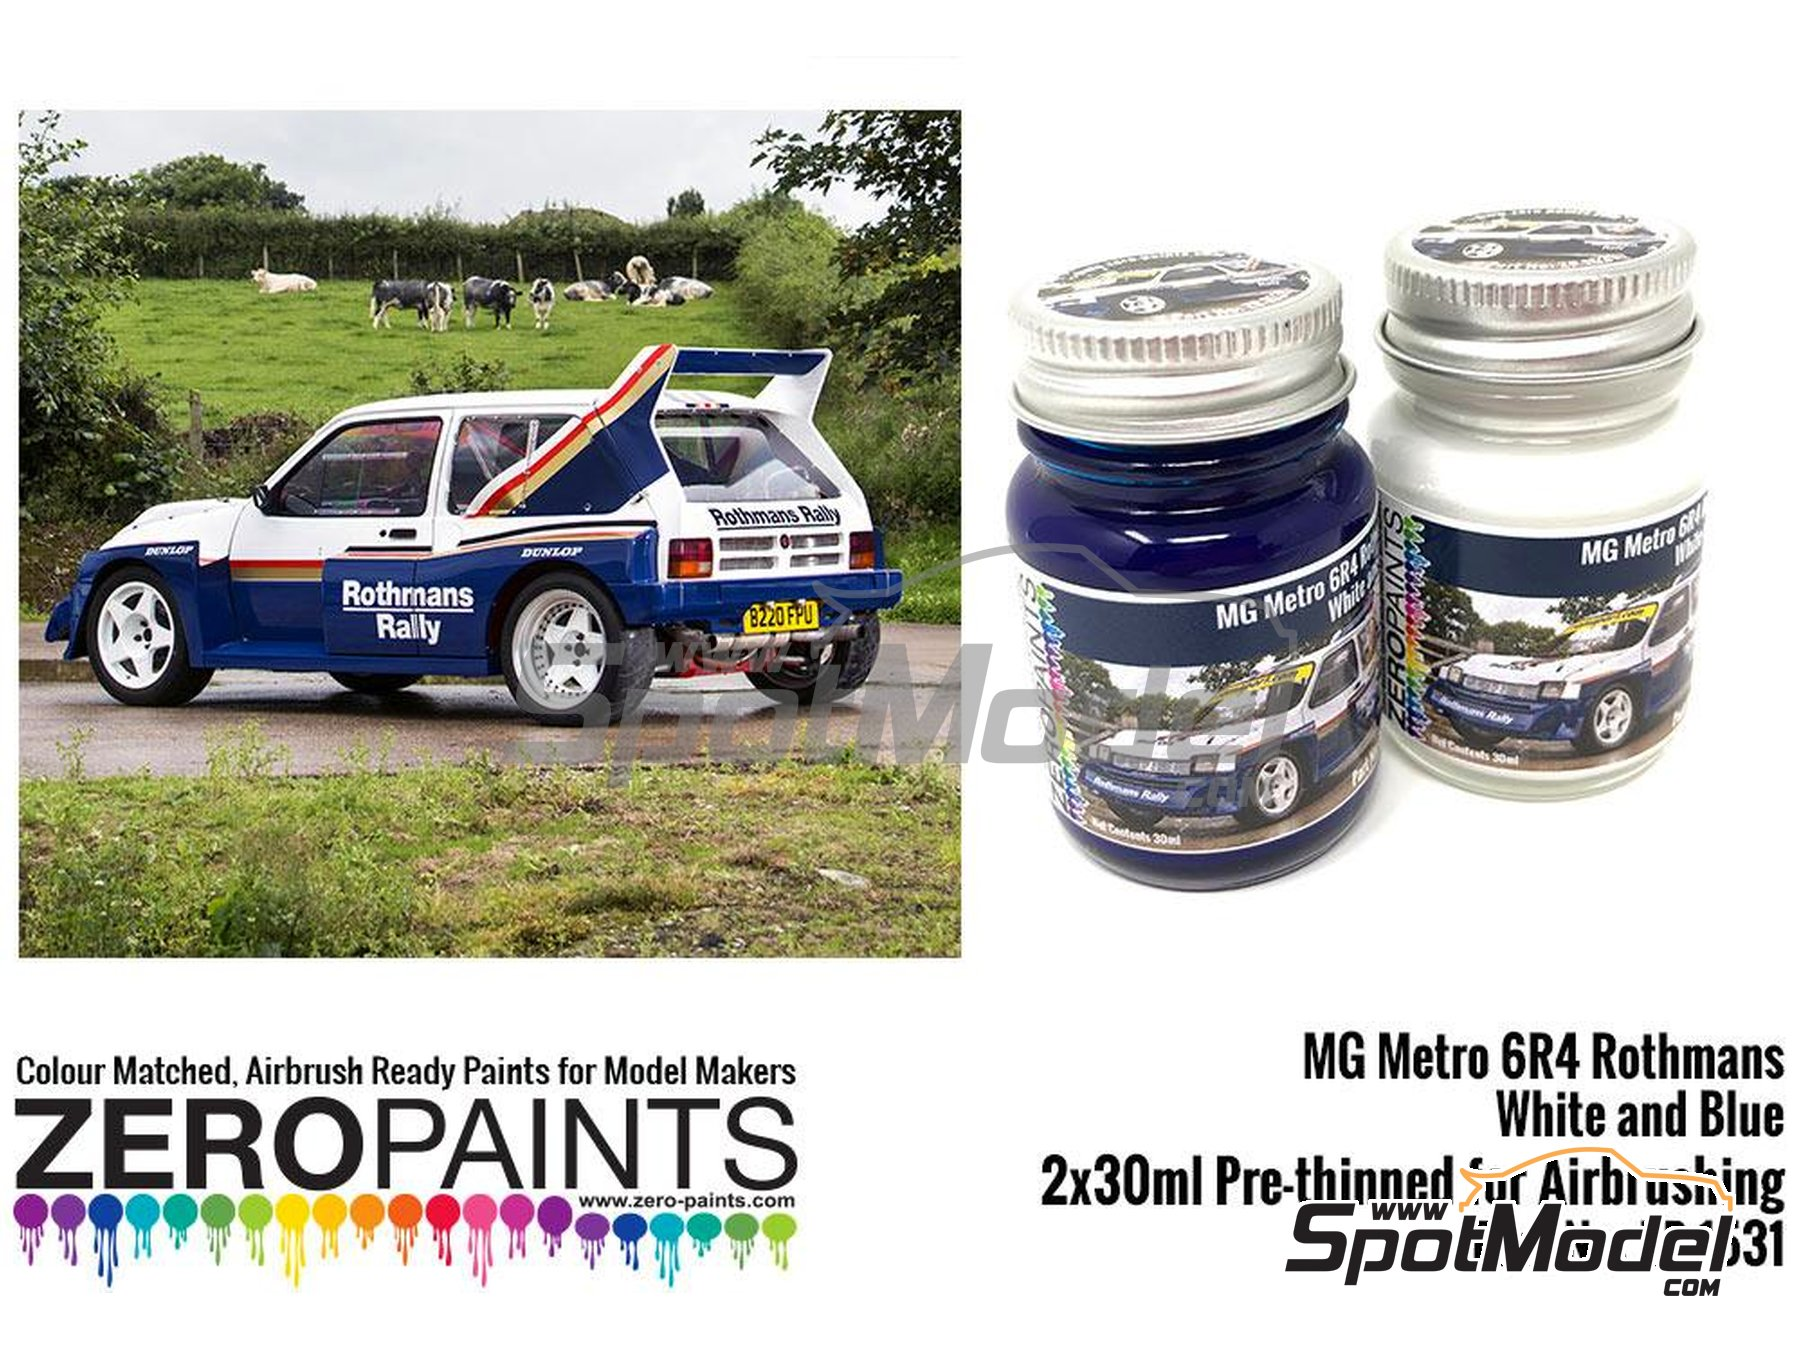 Image 1: Blanco y azul MG Metro 6R4 Computervision - 2 x 30ml | Set de pinturas fabricado por Zero Paints (ref. ZP-1530)